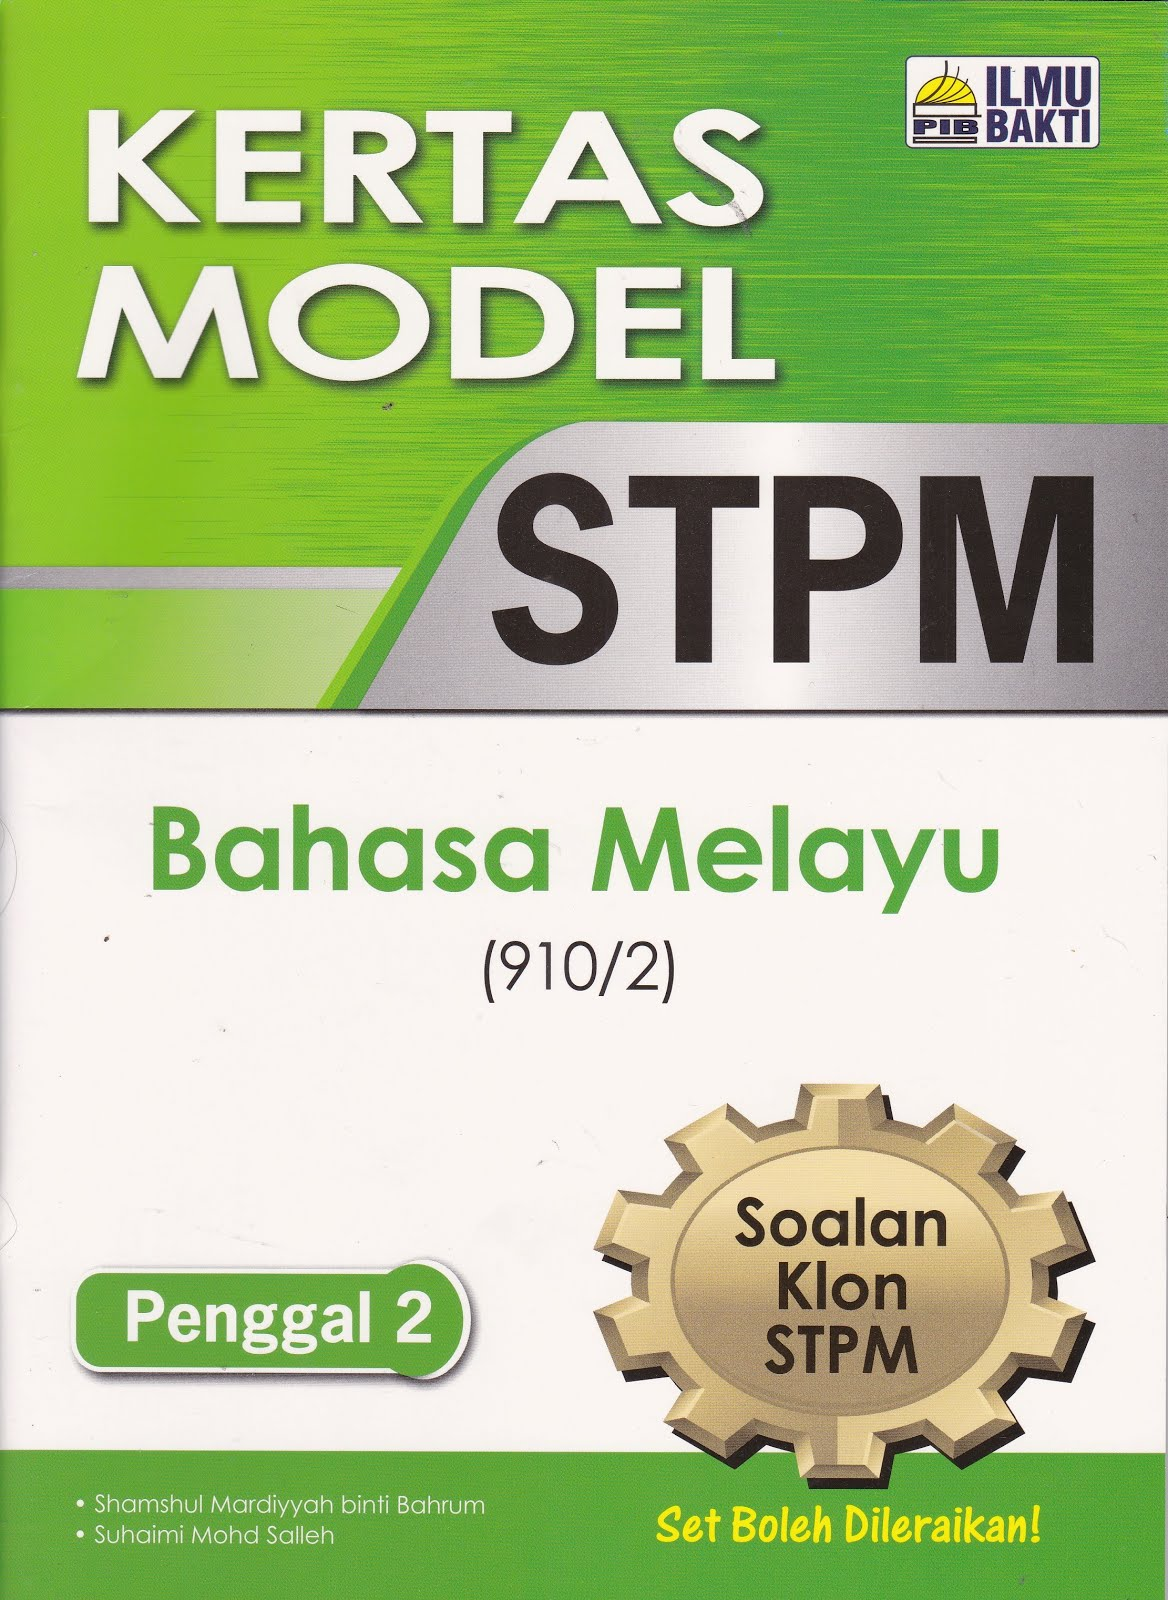 KERTAS MODEL STPM PENGGAL 2